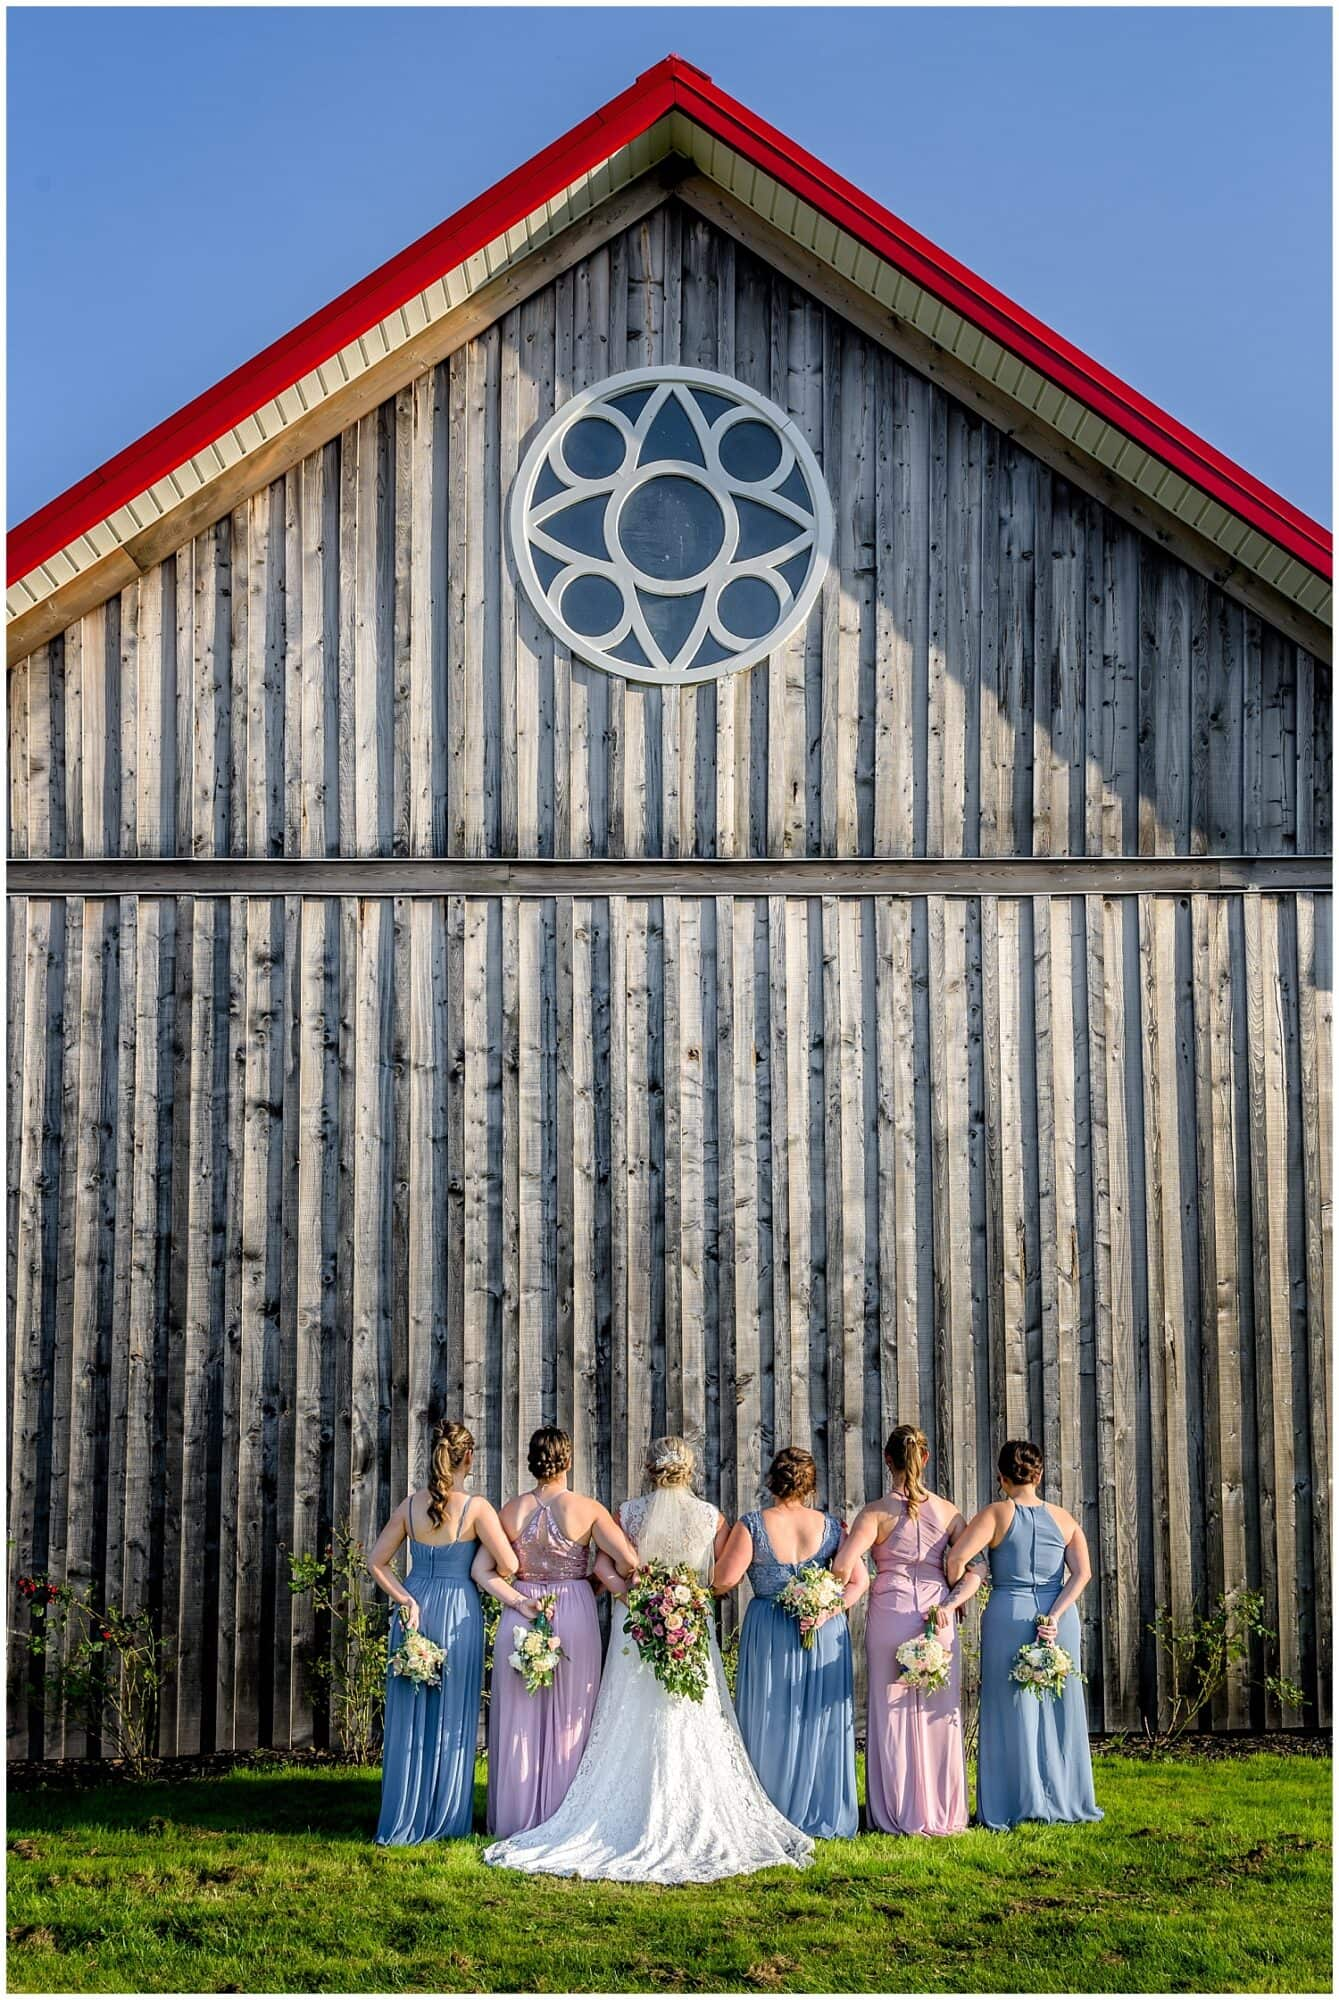 The bride with her bridesmaids pose for wedding photos at the Barn at Sadie Belle Farm in NS.